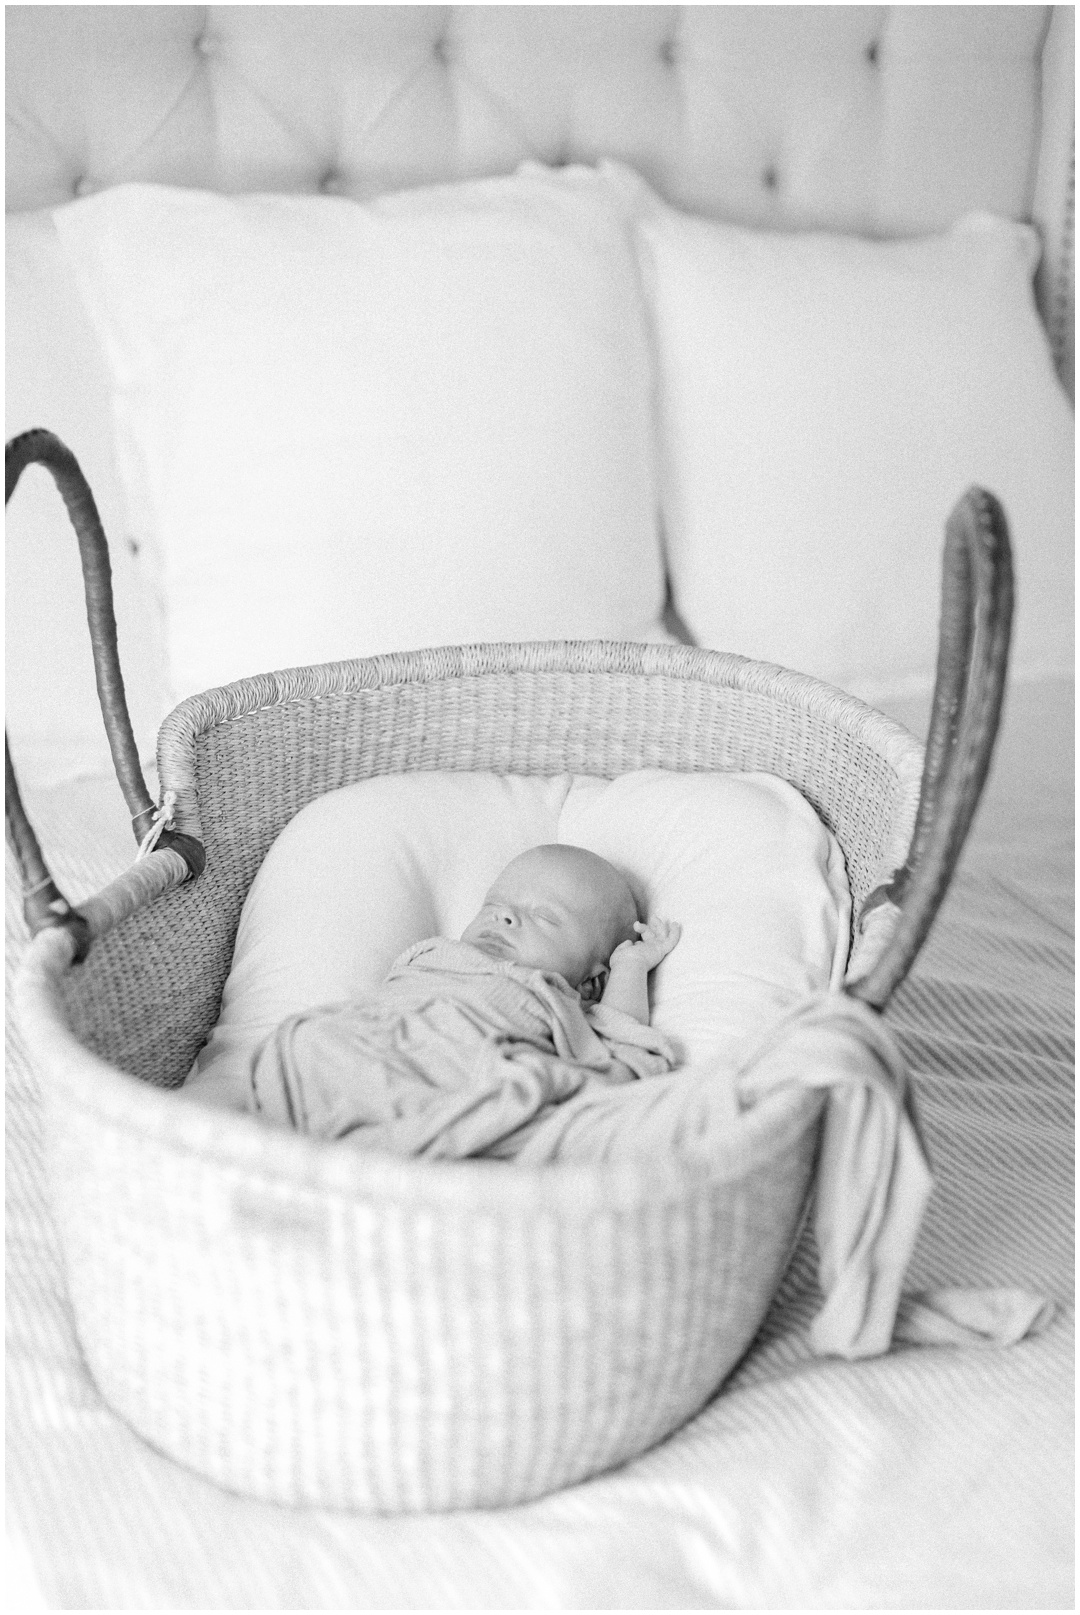 Newport_Beach_Newborn_Light_Airy_Natural_Photographer_Newport_Beach_In-Home_Photographer_Orange_County_Family_Photographer_Cori_Kleckner_Photography_Huntington_Beach_Photographer_Family_OC_Newborn_Meghan_Sullivan_Newborn_Family_Greer_Sullivan_3249.jpg